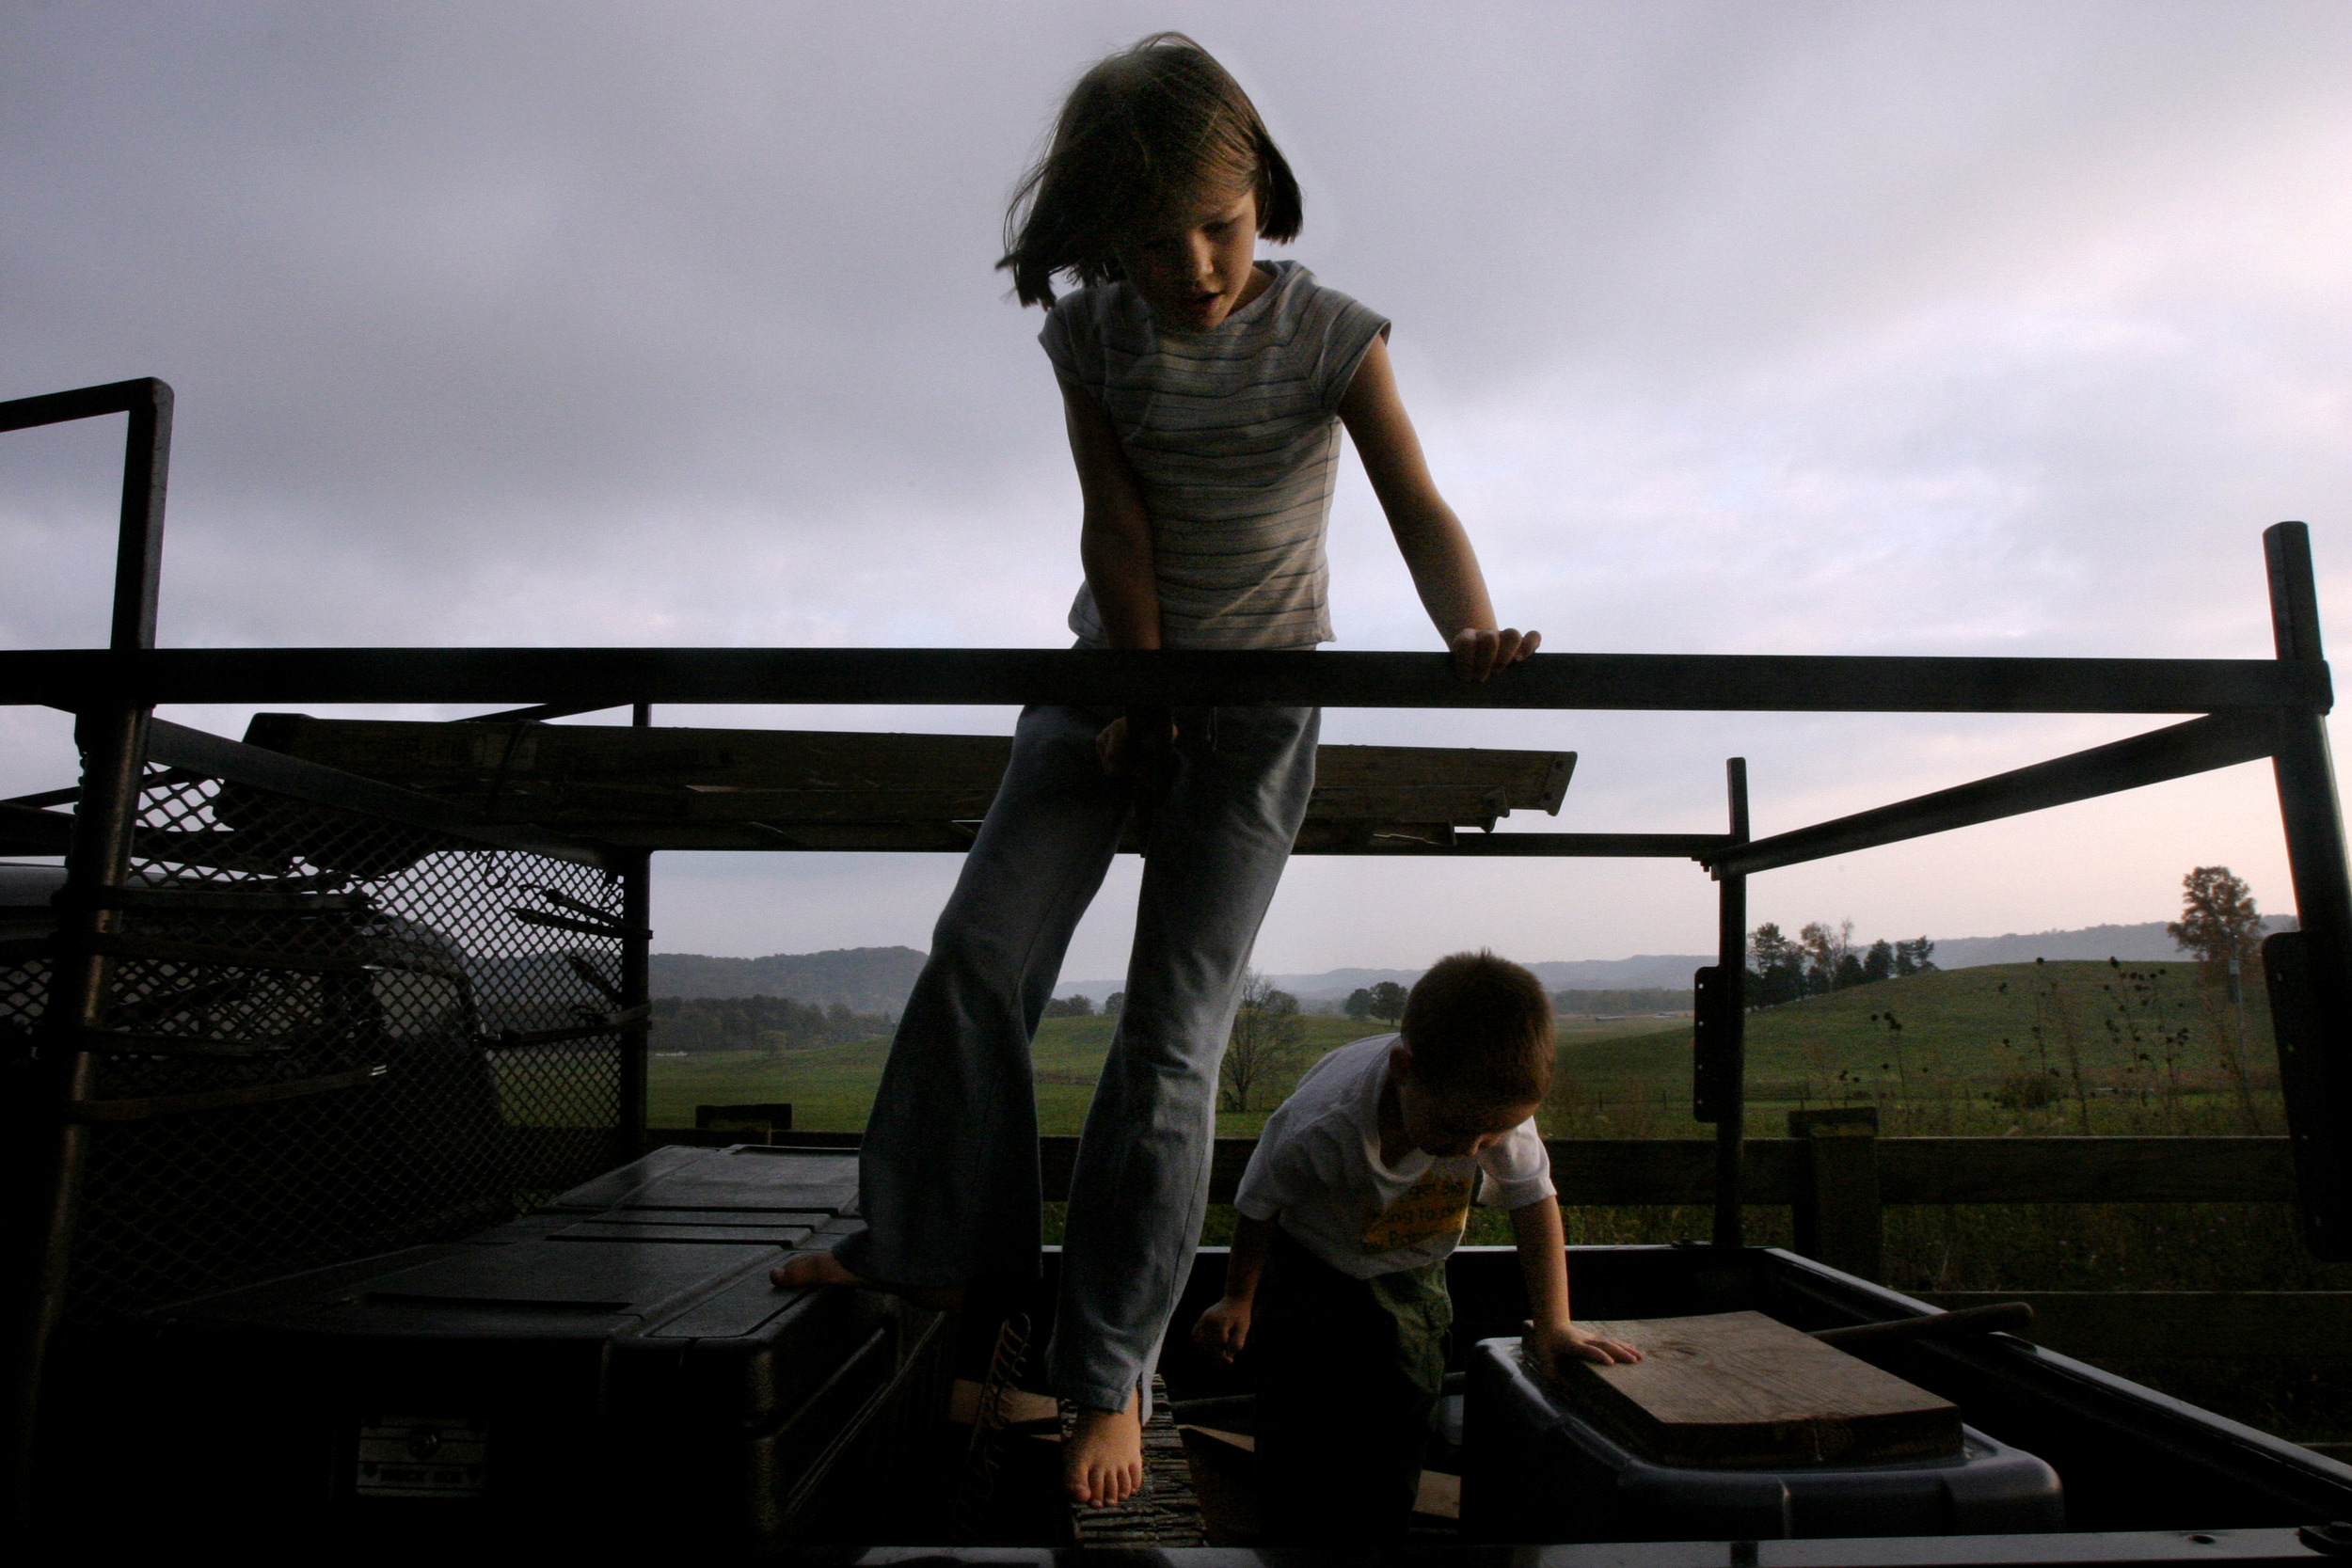 Anna Stewart Burdette, 7, and Tibor, 4 play together on a pickup truck as the sun sets over the vista of rolling hills and fields behind their house.